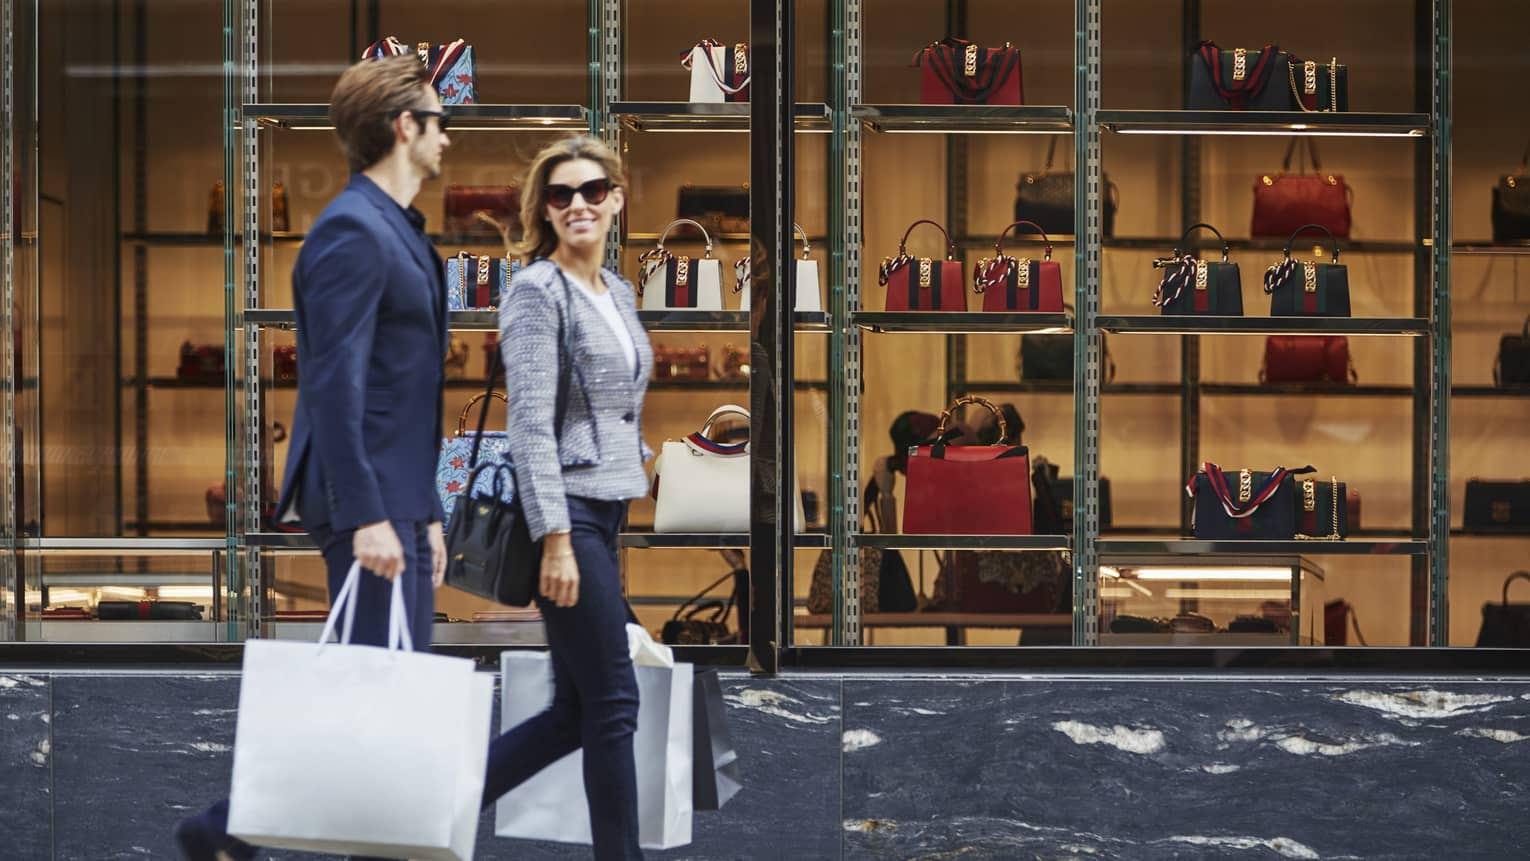 Man and woman in suit jackets, sunglasses hold shopping bags, walk by large store window with designer purses on display